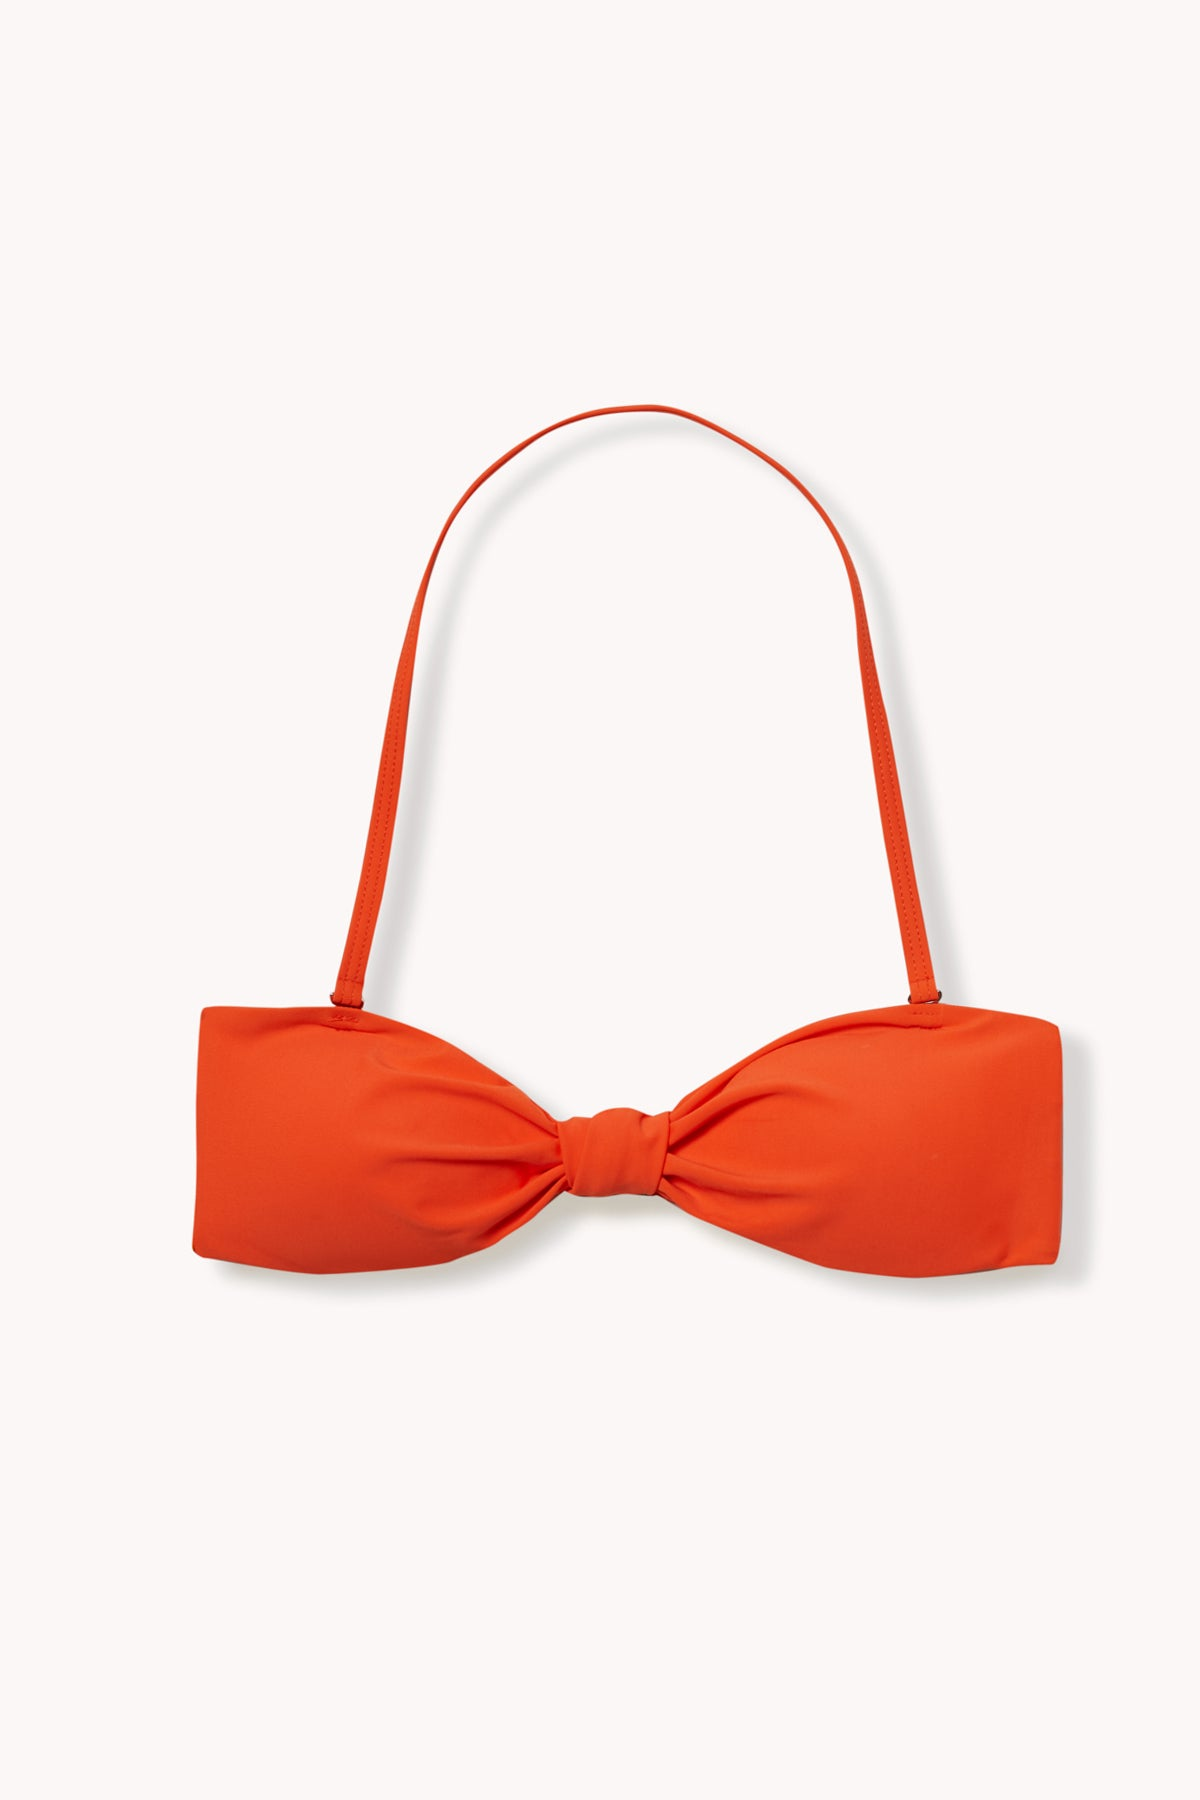 Detail shot of the bora bikini top, by Ookioh, in tangerine color